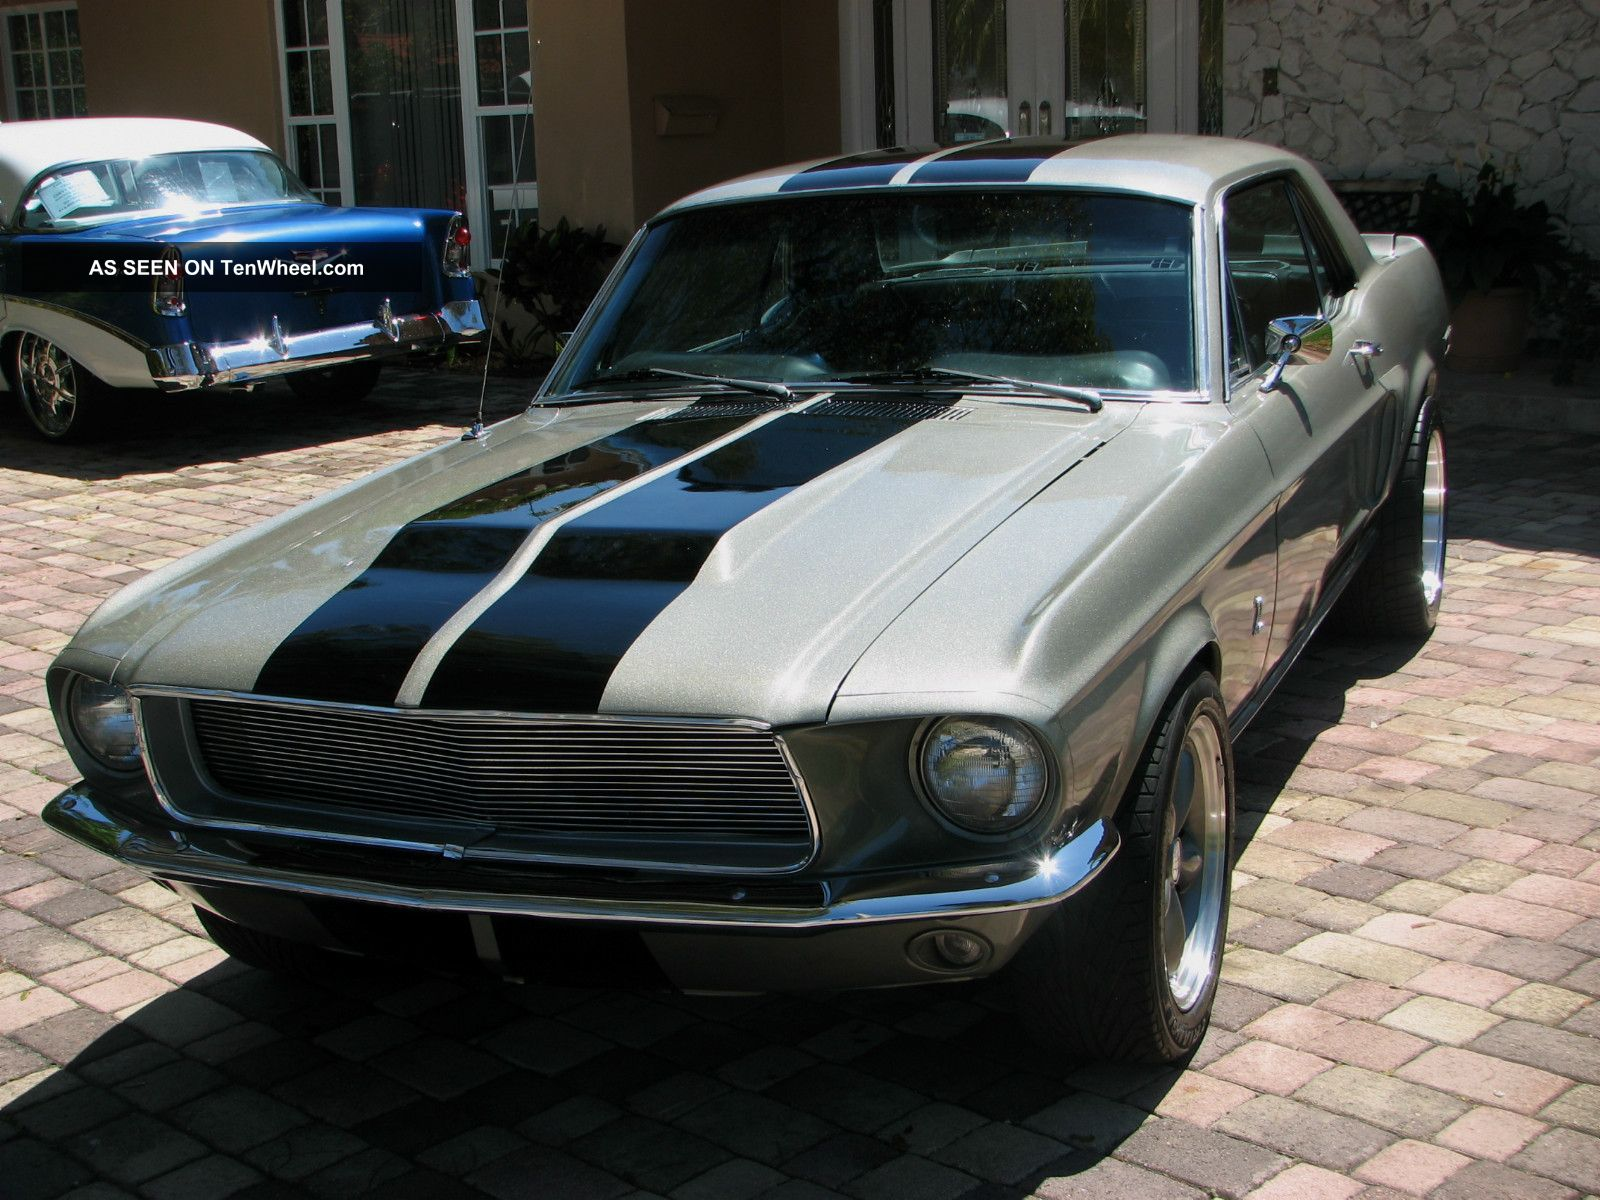 1968 Ford Mustang Shelby Cobra Gt - 500 Eleanor Tribute 289 Eng. Mustang photo